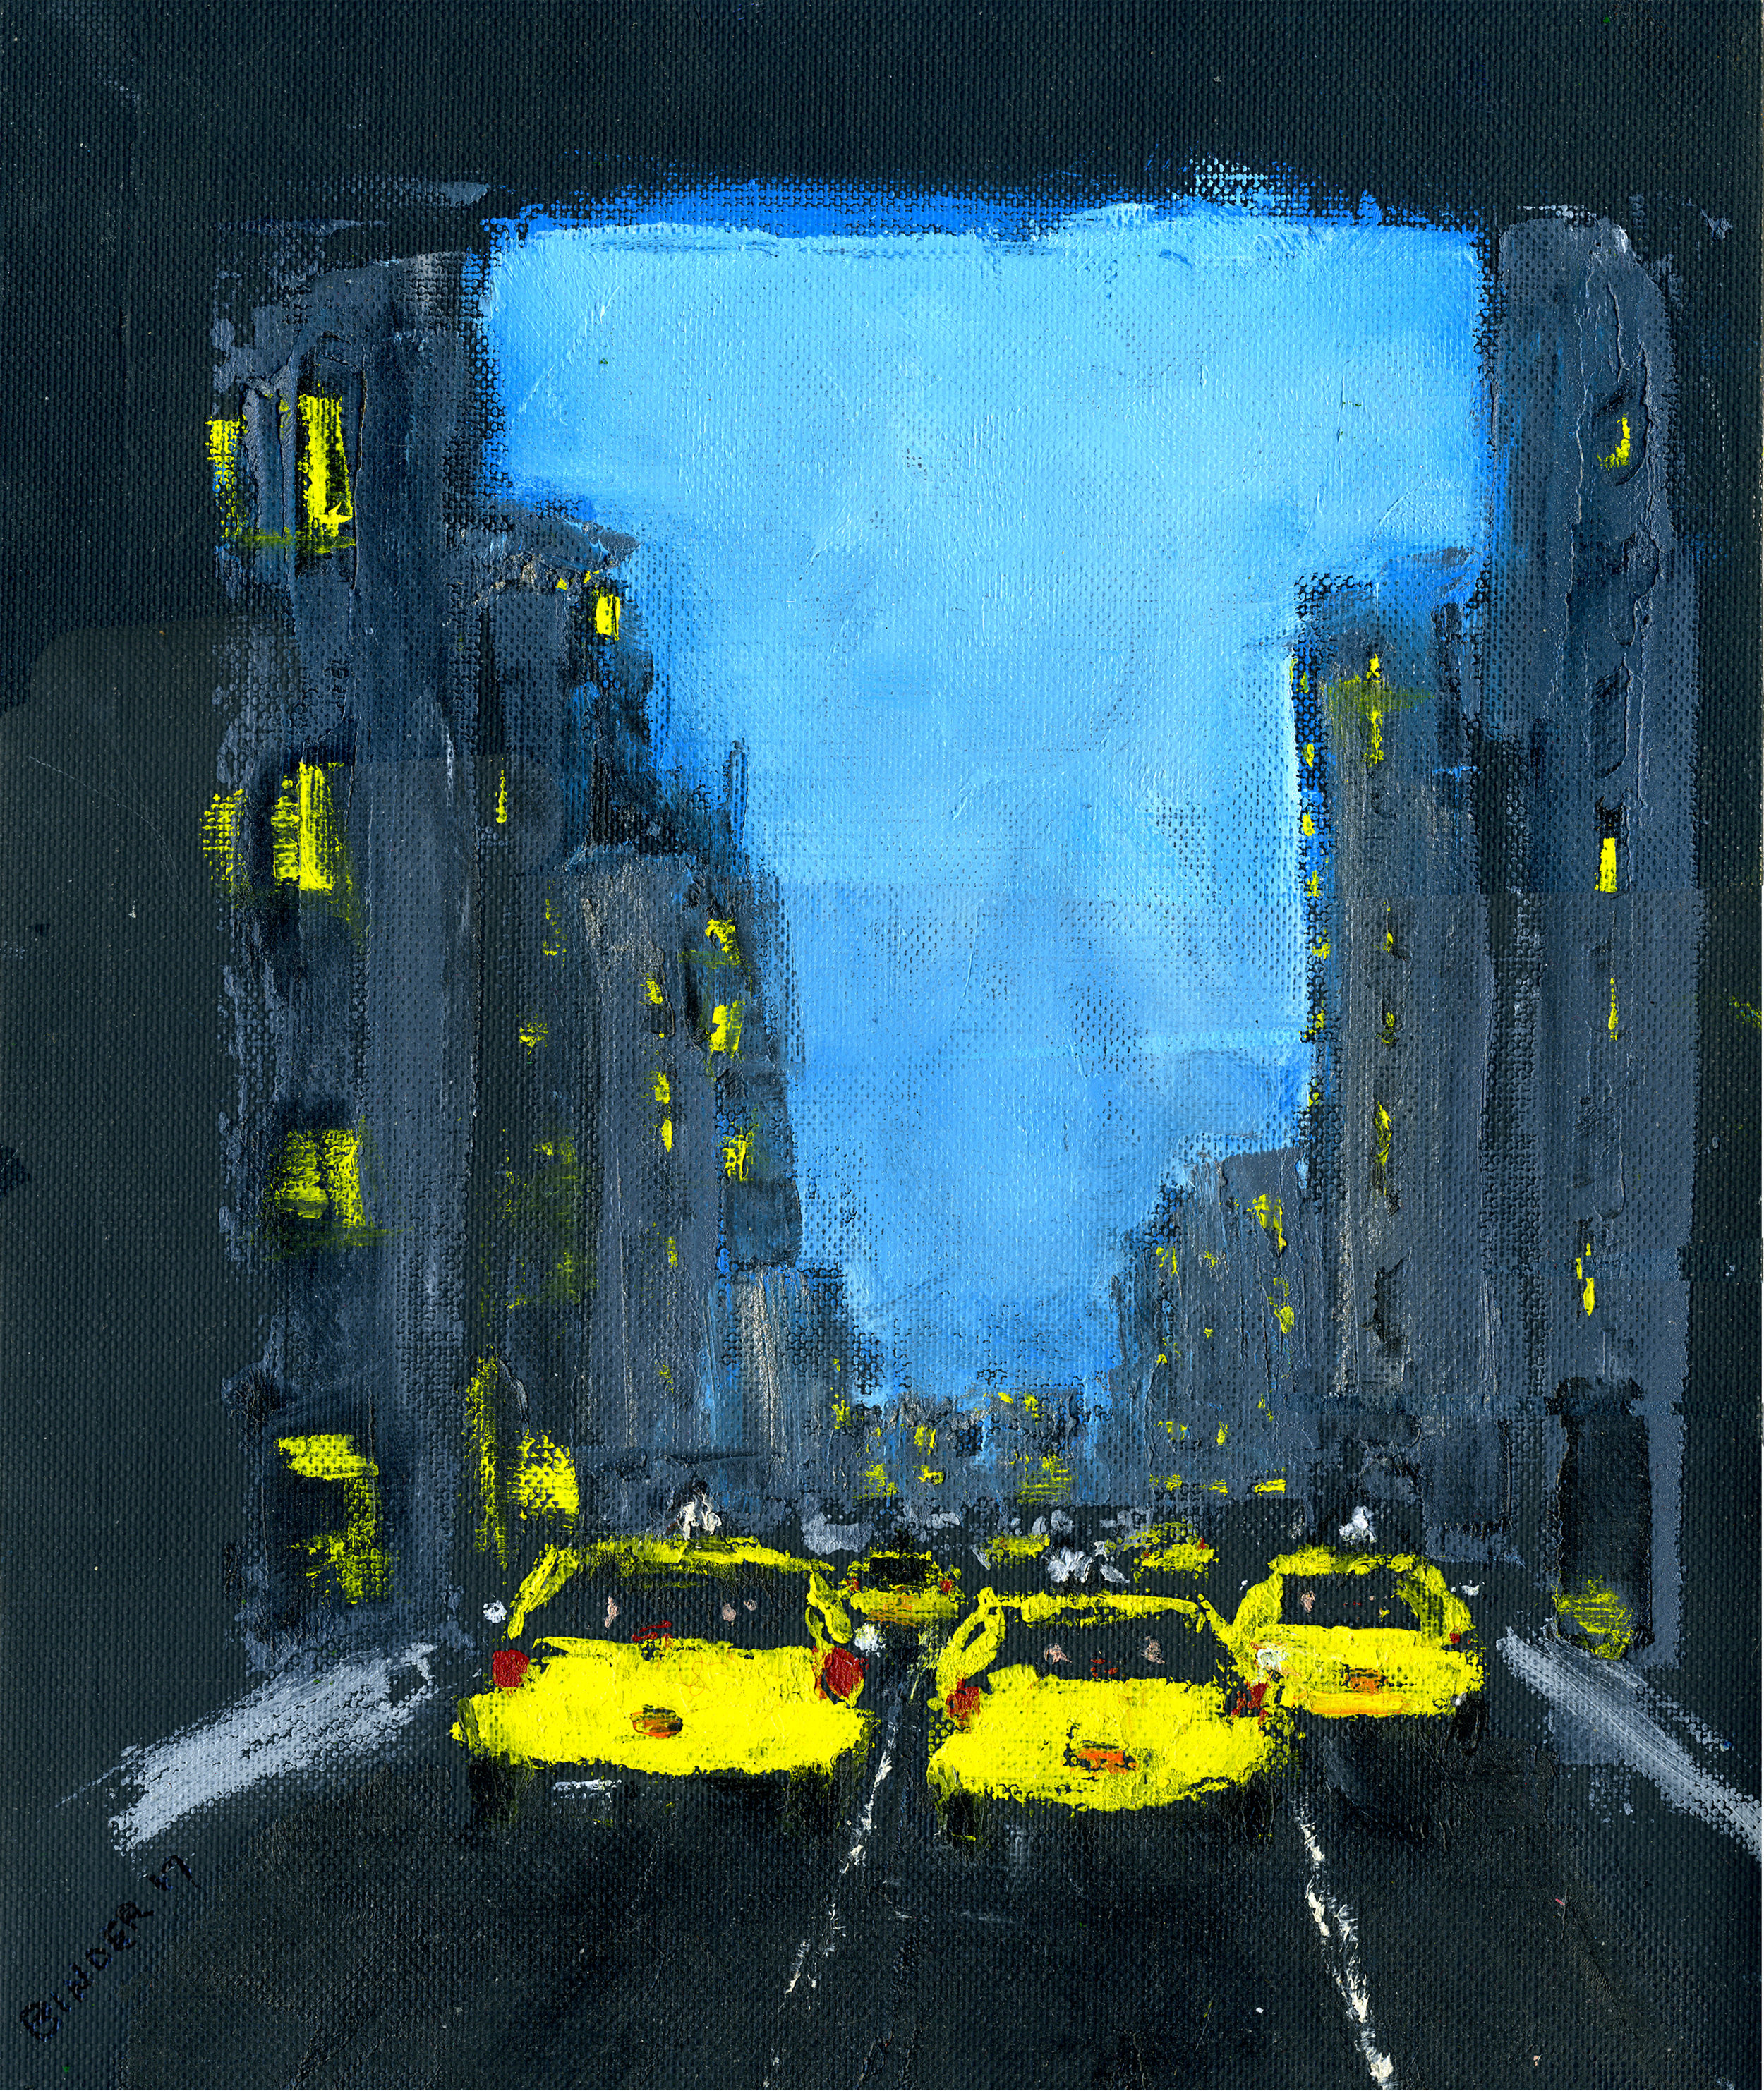 "7th Avenue (South) at 43rd Street   Hand-worked monotype in oil  1st edition  12"" x 9""  $385  Click image to enlarge   Inquire"